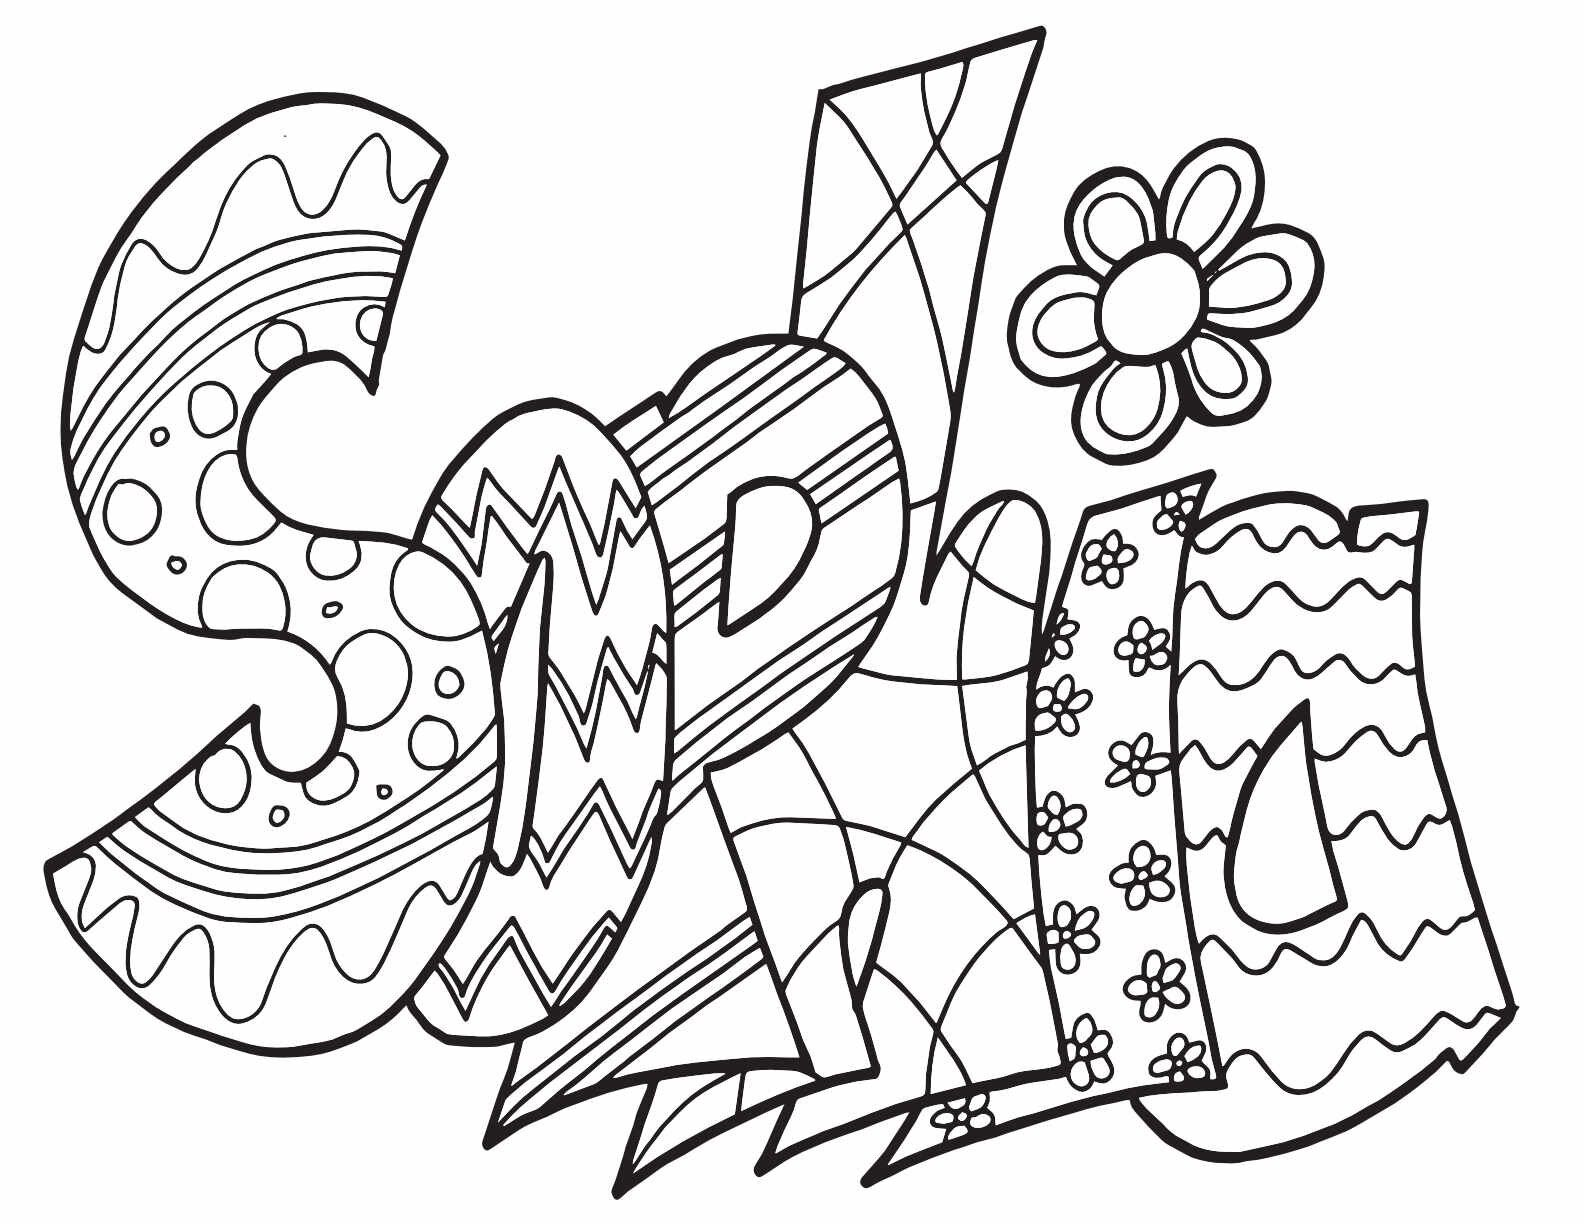 Lauren Classic Stevie Doodle Printable Free Printable Coloring Page Stevie Doodles Name Coloring Pages Coloring Pages Free Printable Coloring Pages